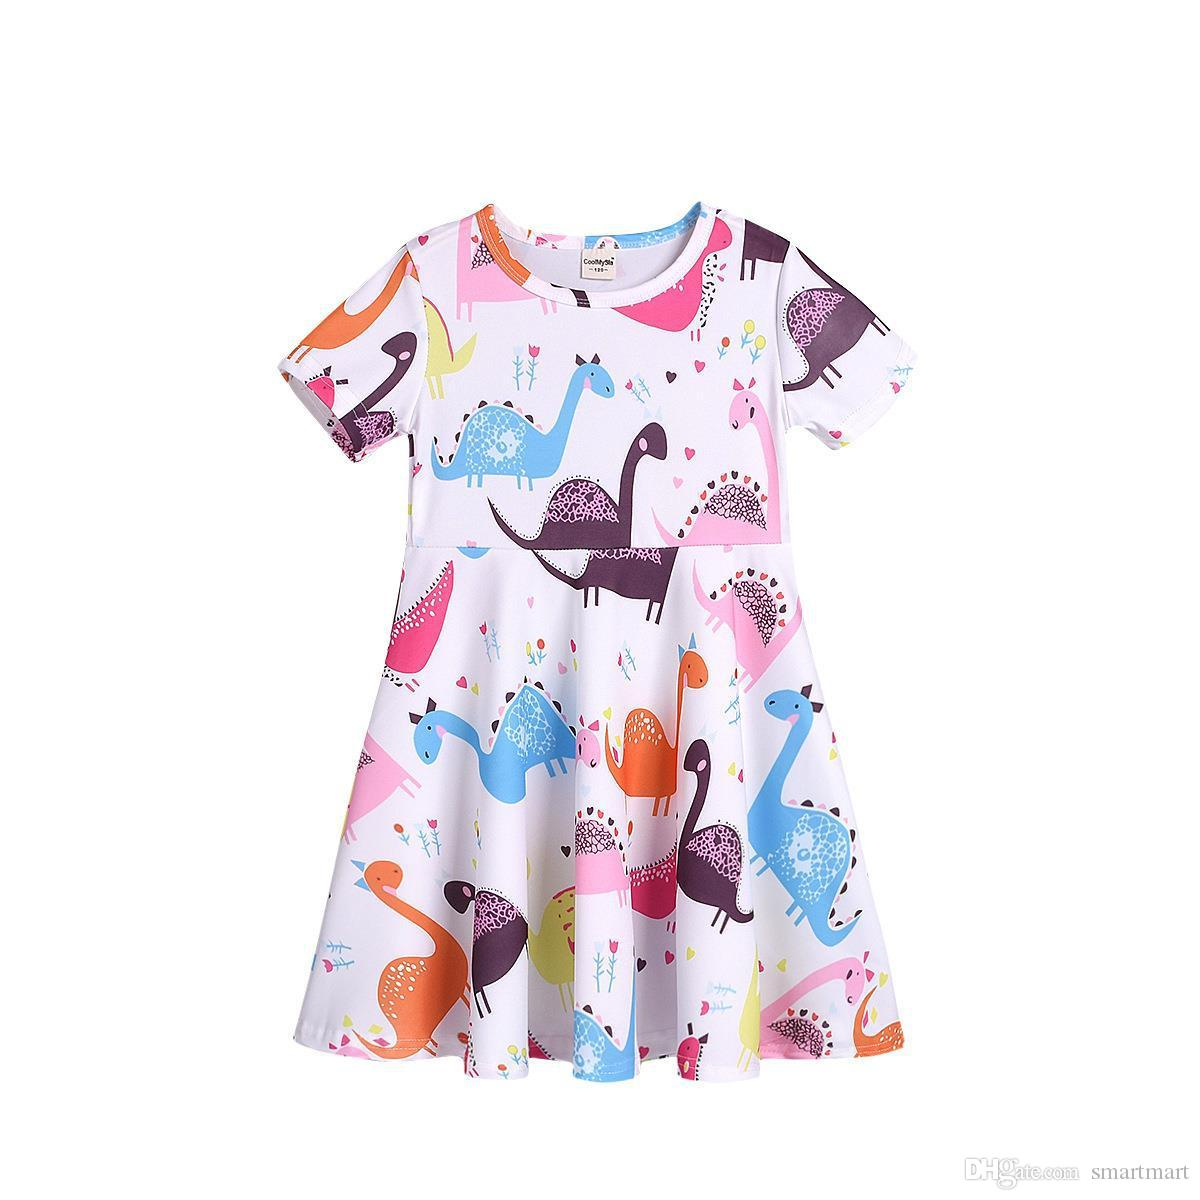 Baby Girls Dress Little Kids Toddler Girl Cartoon Owl Splice Tiered Sundress Little Princess Dresses Outfits Skirt